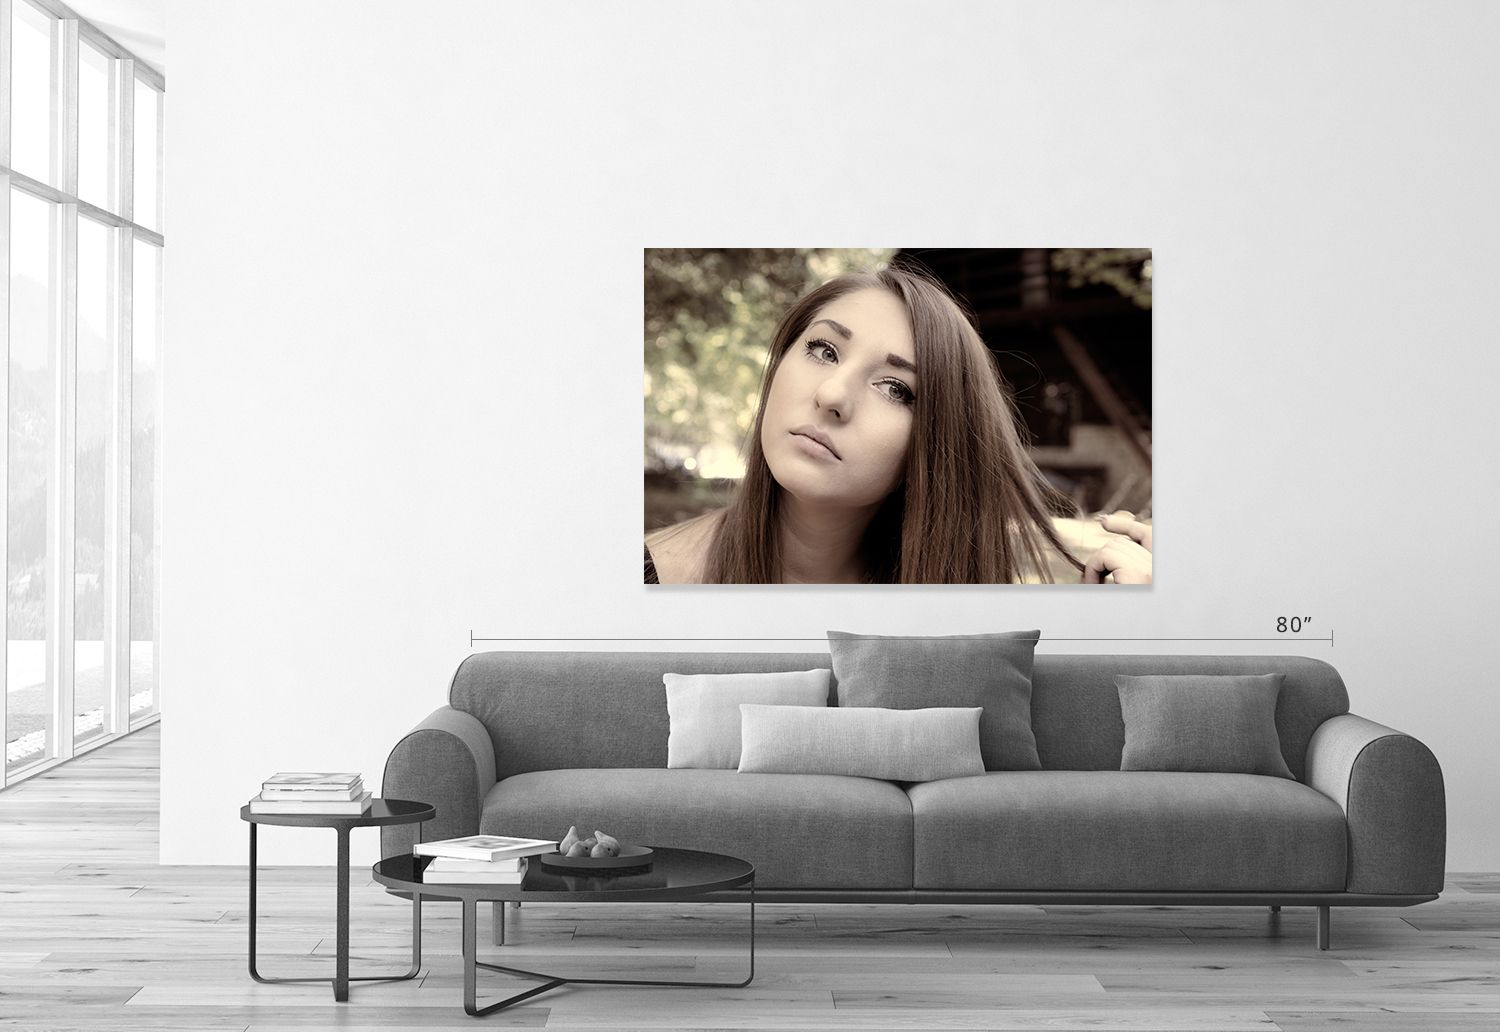 Explore more #photography that fits your style here: https://www.talariagallery.com/original-art-for-sale-photography.html #talariagallery #limitededitionprints #artforsale